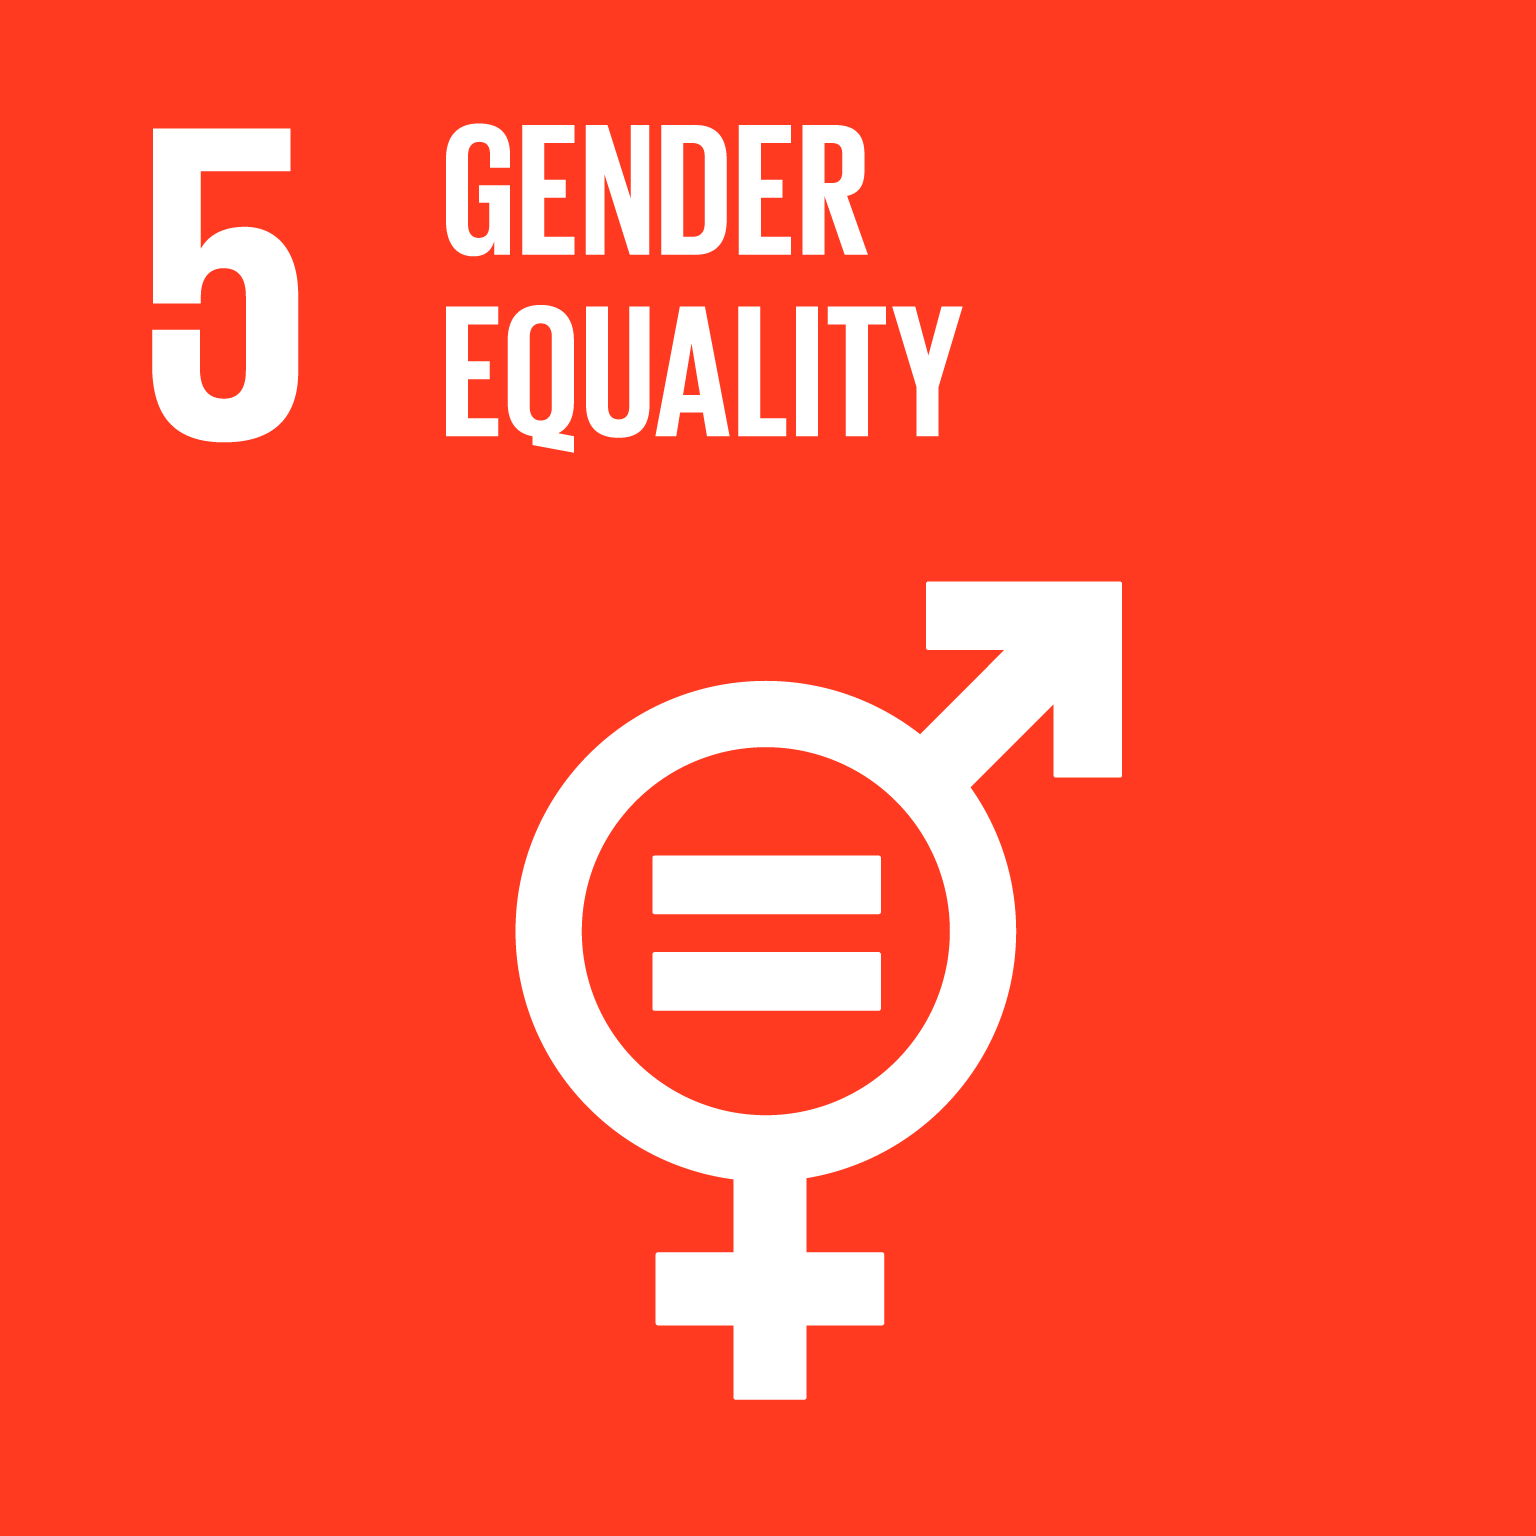 The SDGs icons of GENDER EQYALITY